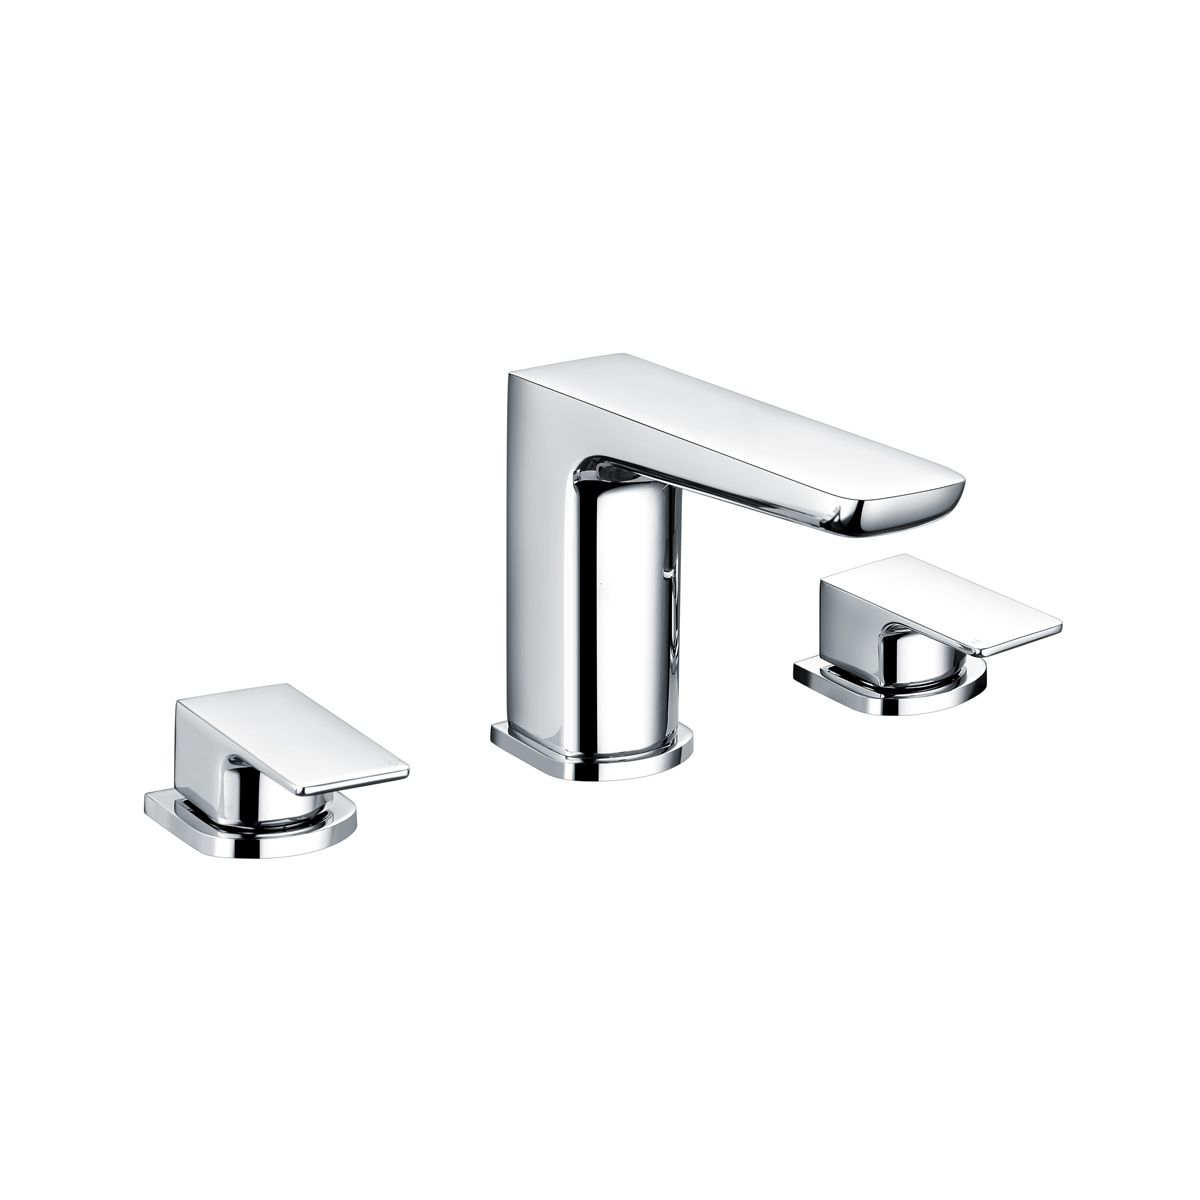 RAK Moon Deck Mounted 3 Hole Bath Filler Tap